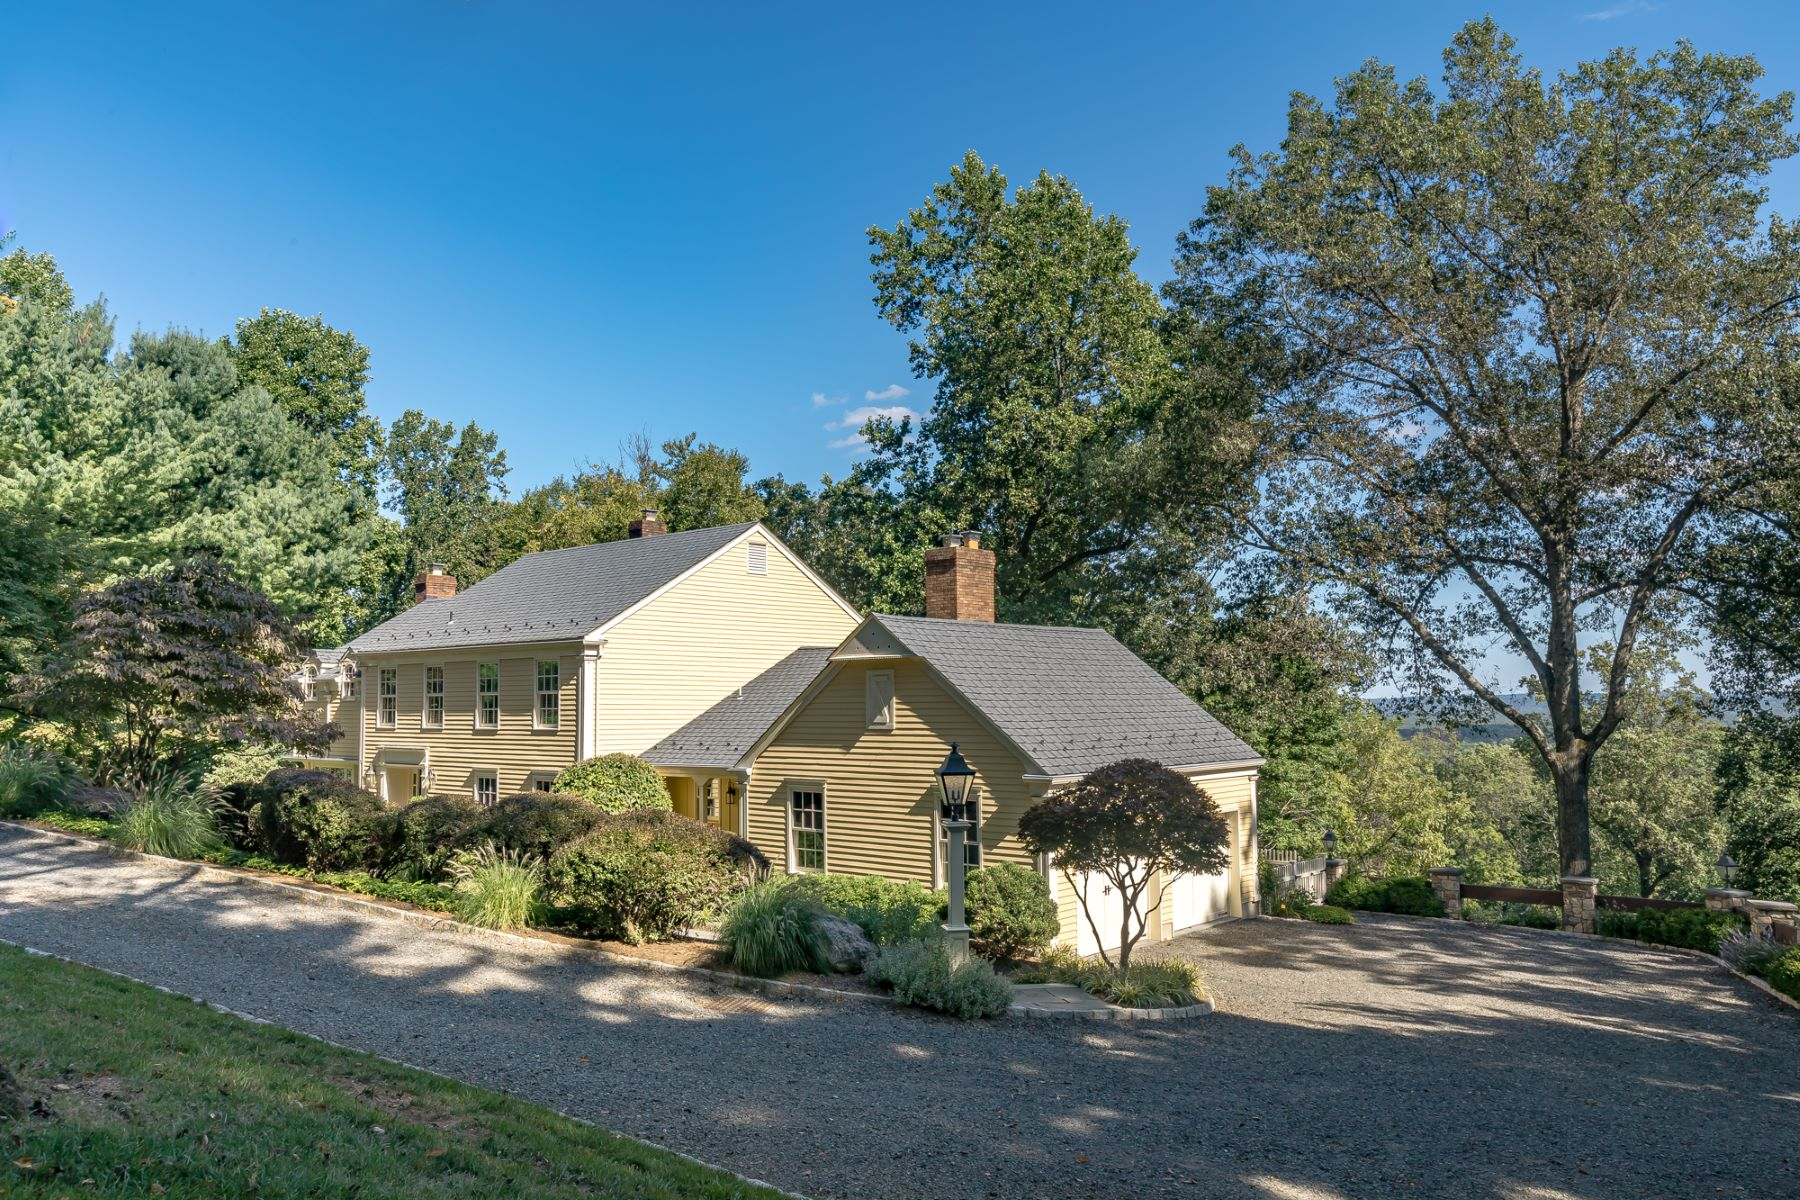 Single Family Homes for Sale at Exceptional Colonial 127 Old Army Road Basking Ridge, New Jersey 07920 United States